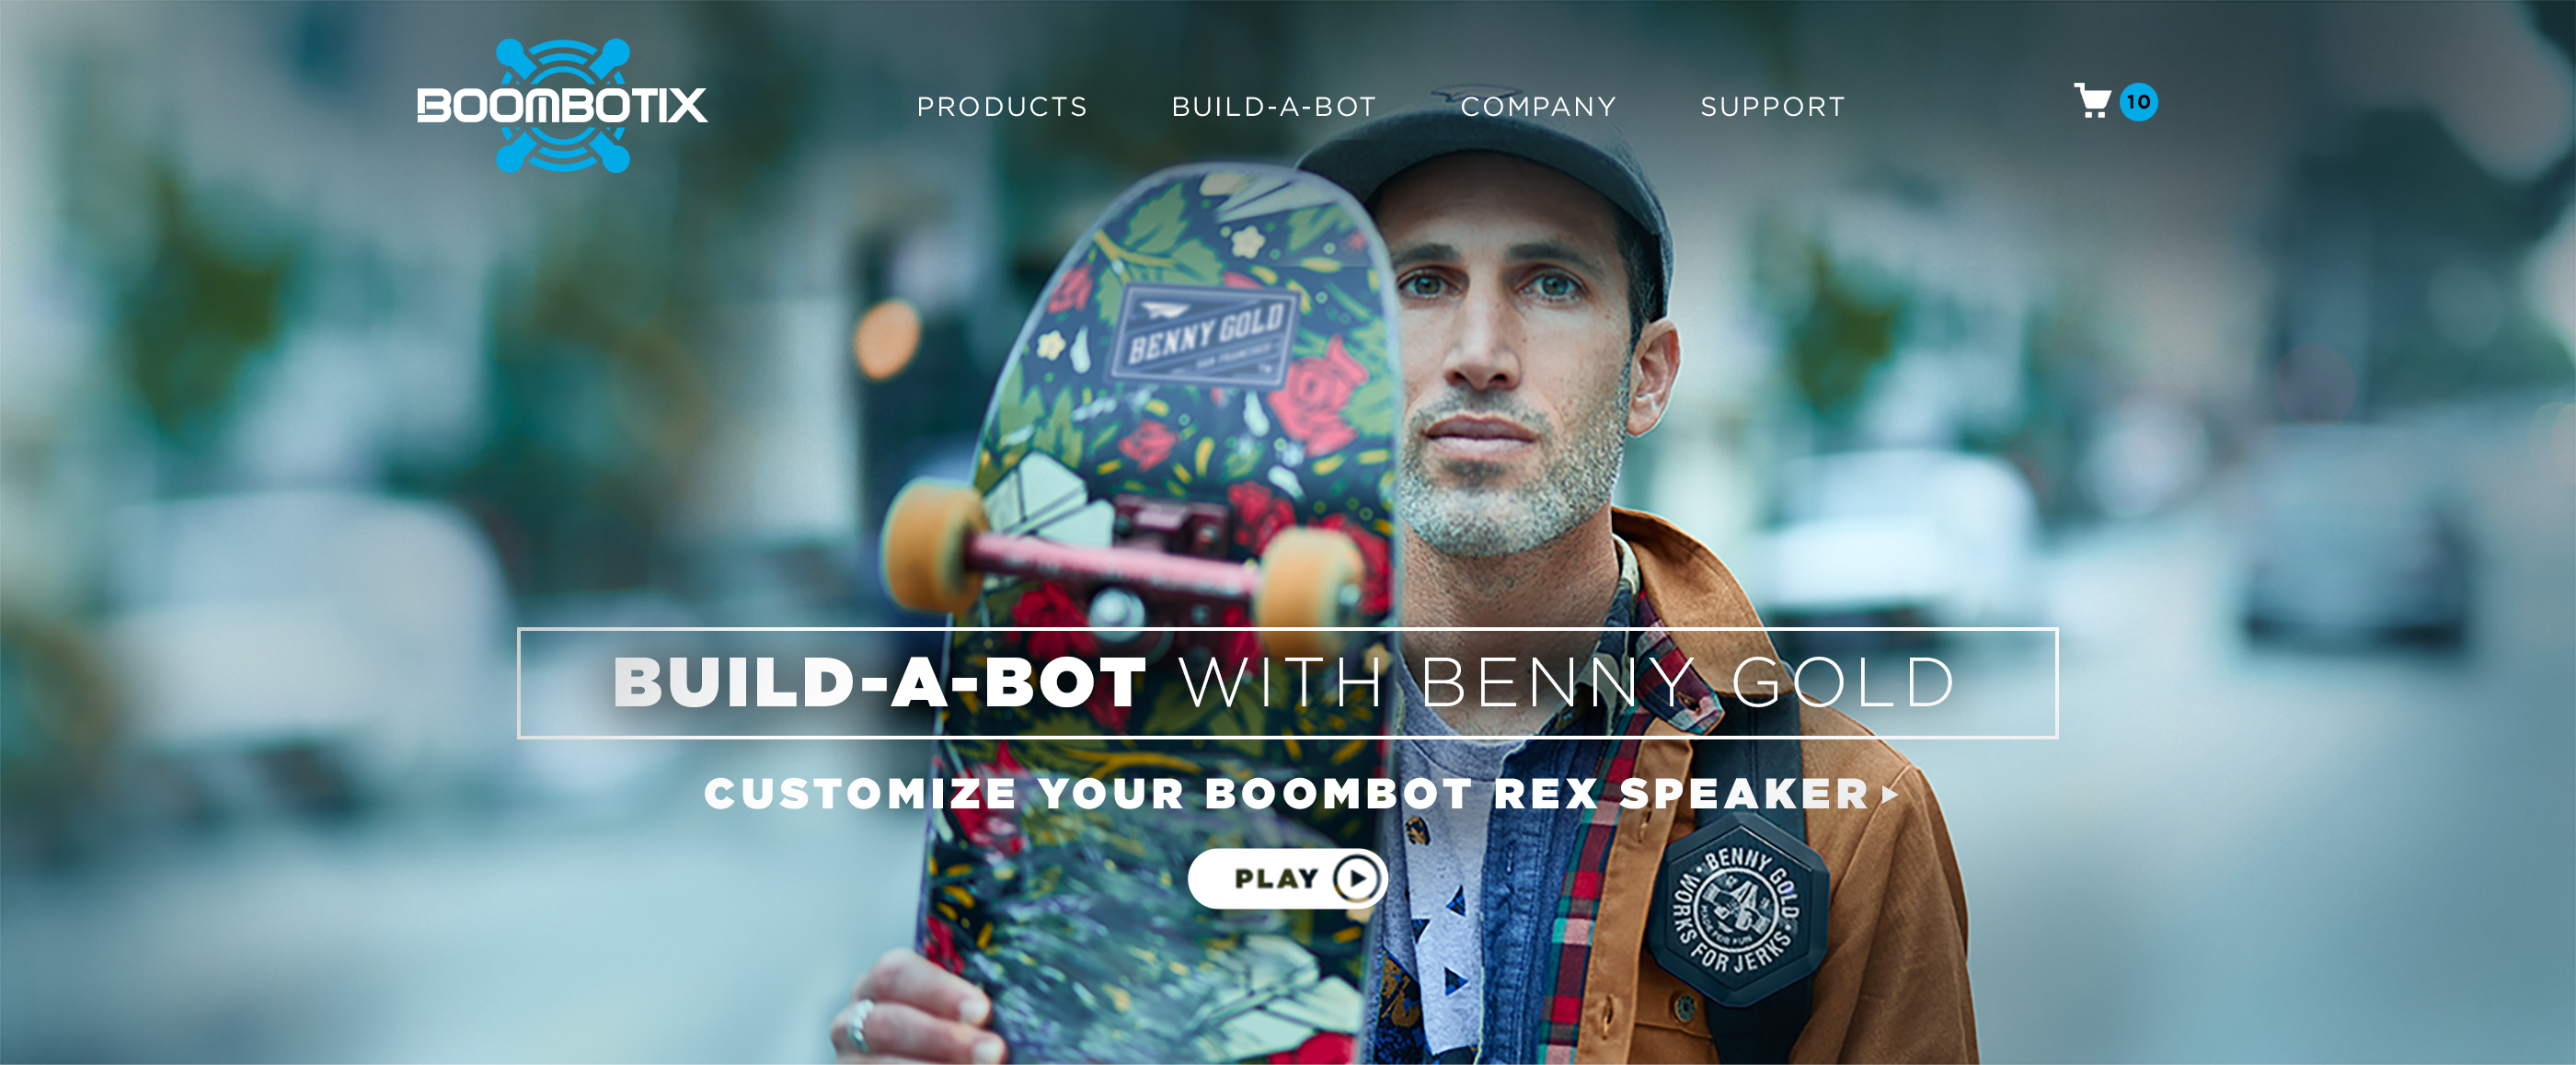 Boombotix website landing page with hero image of Benny Gold